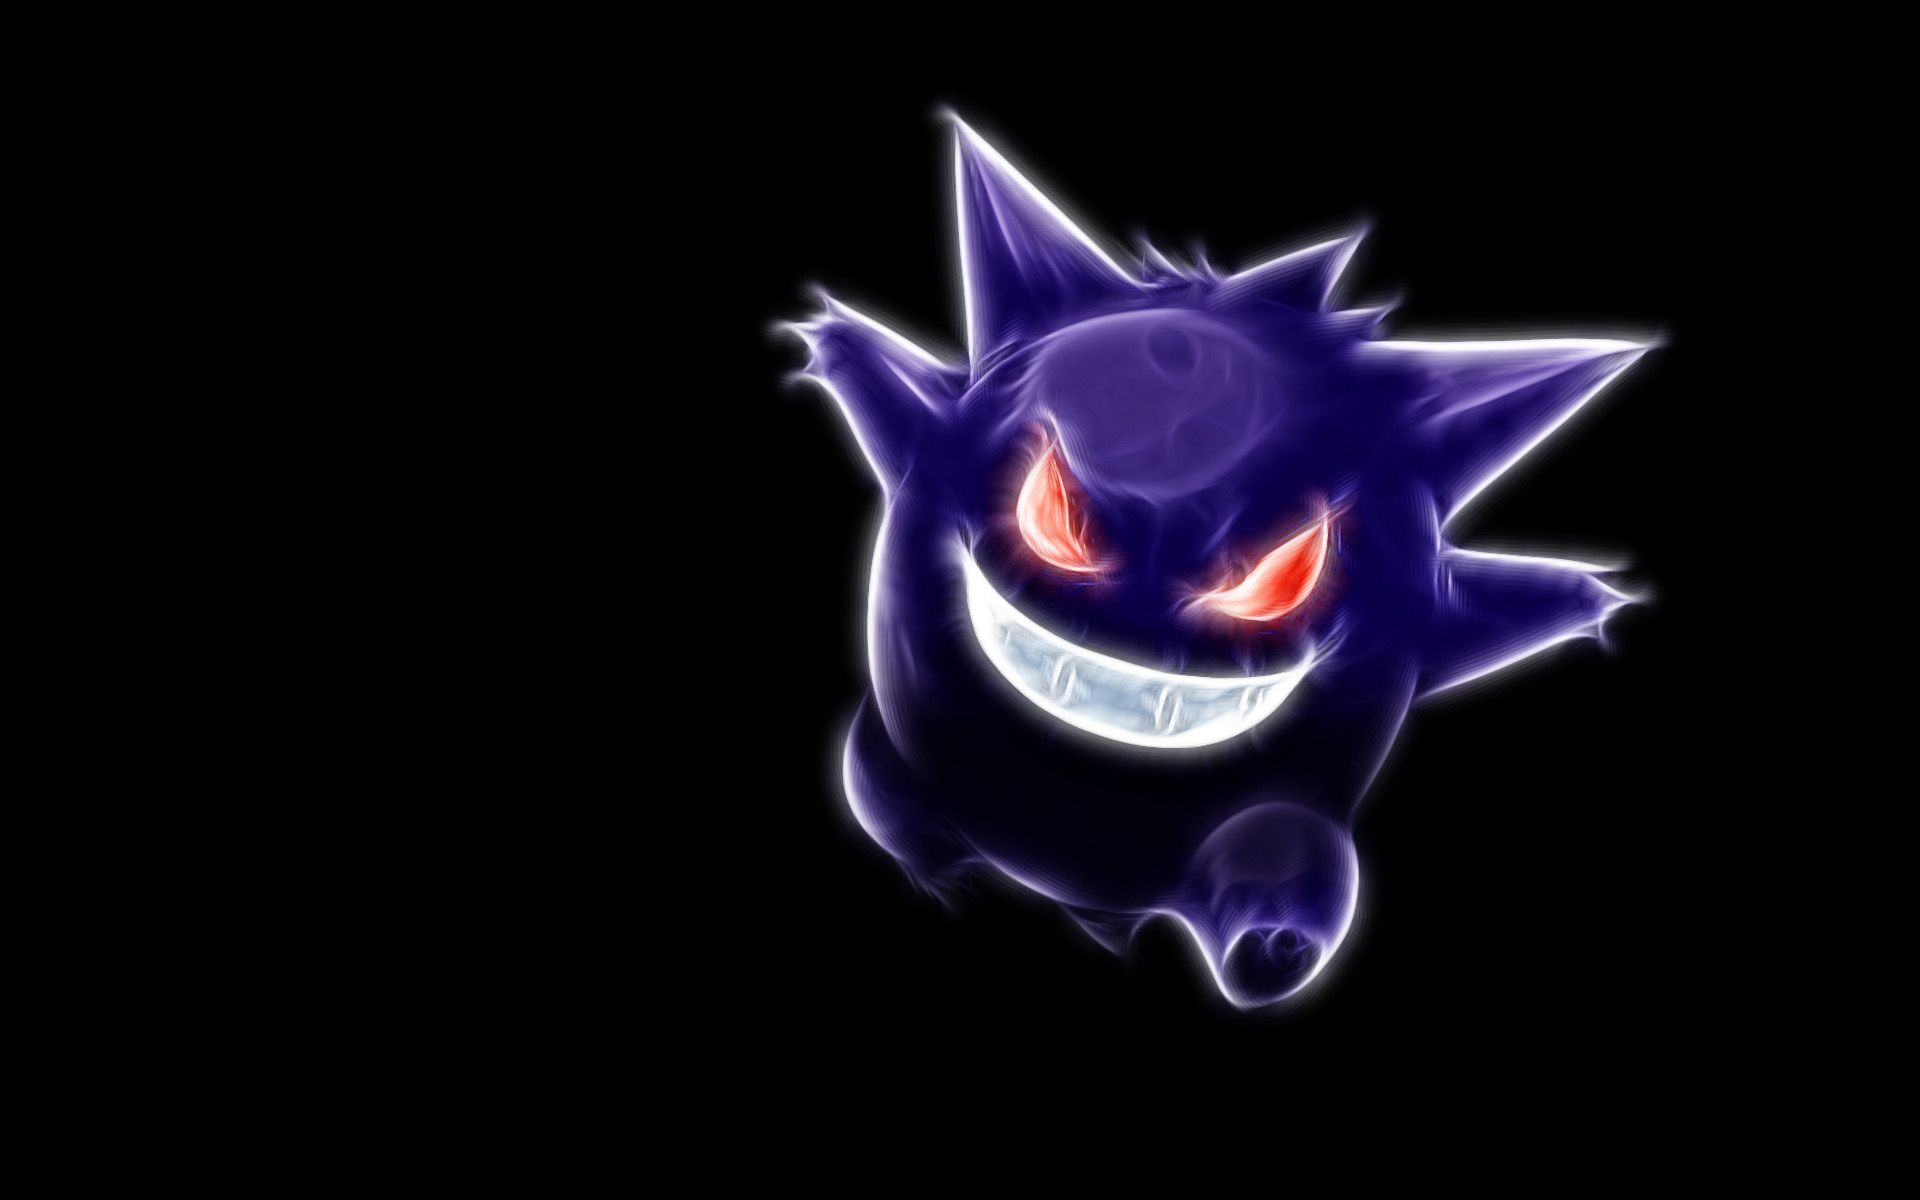 Wallpaper for your desktop s wallpaper gengar wallpaper high - Hd Desktop Pokemon Wallpapers